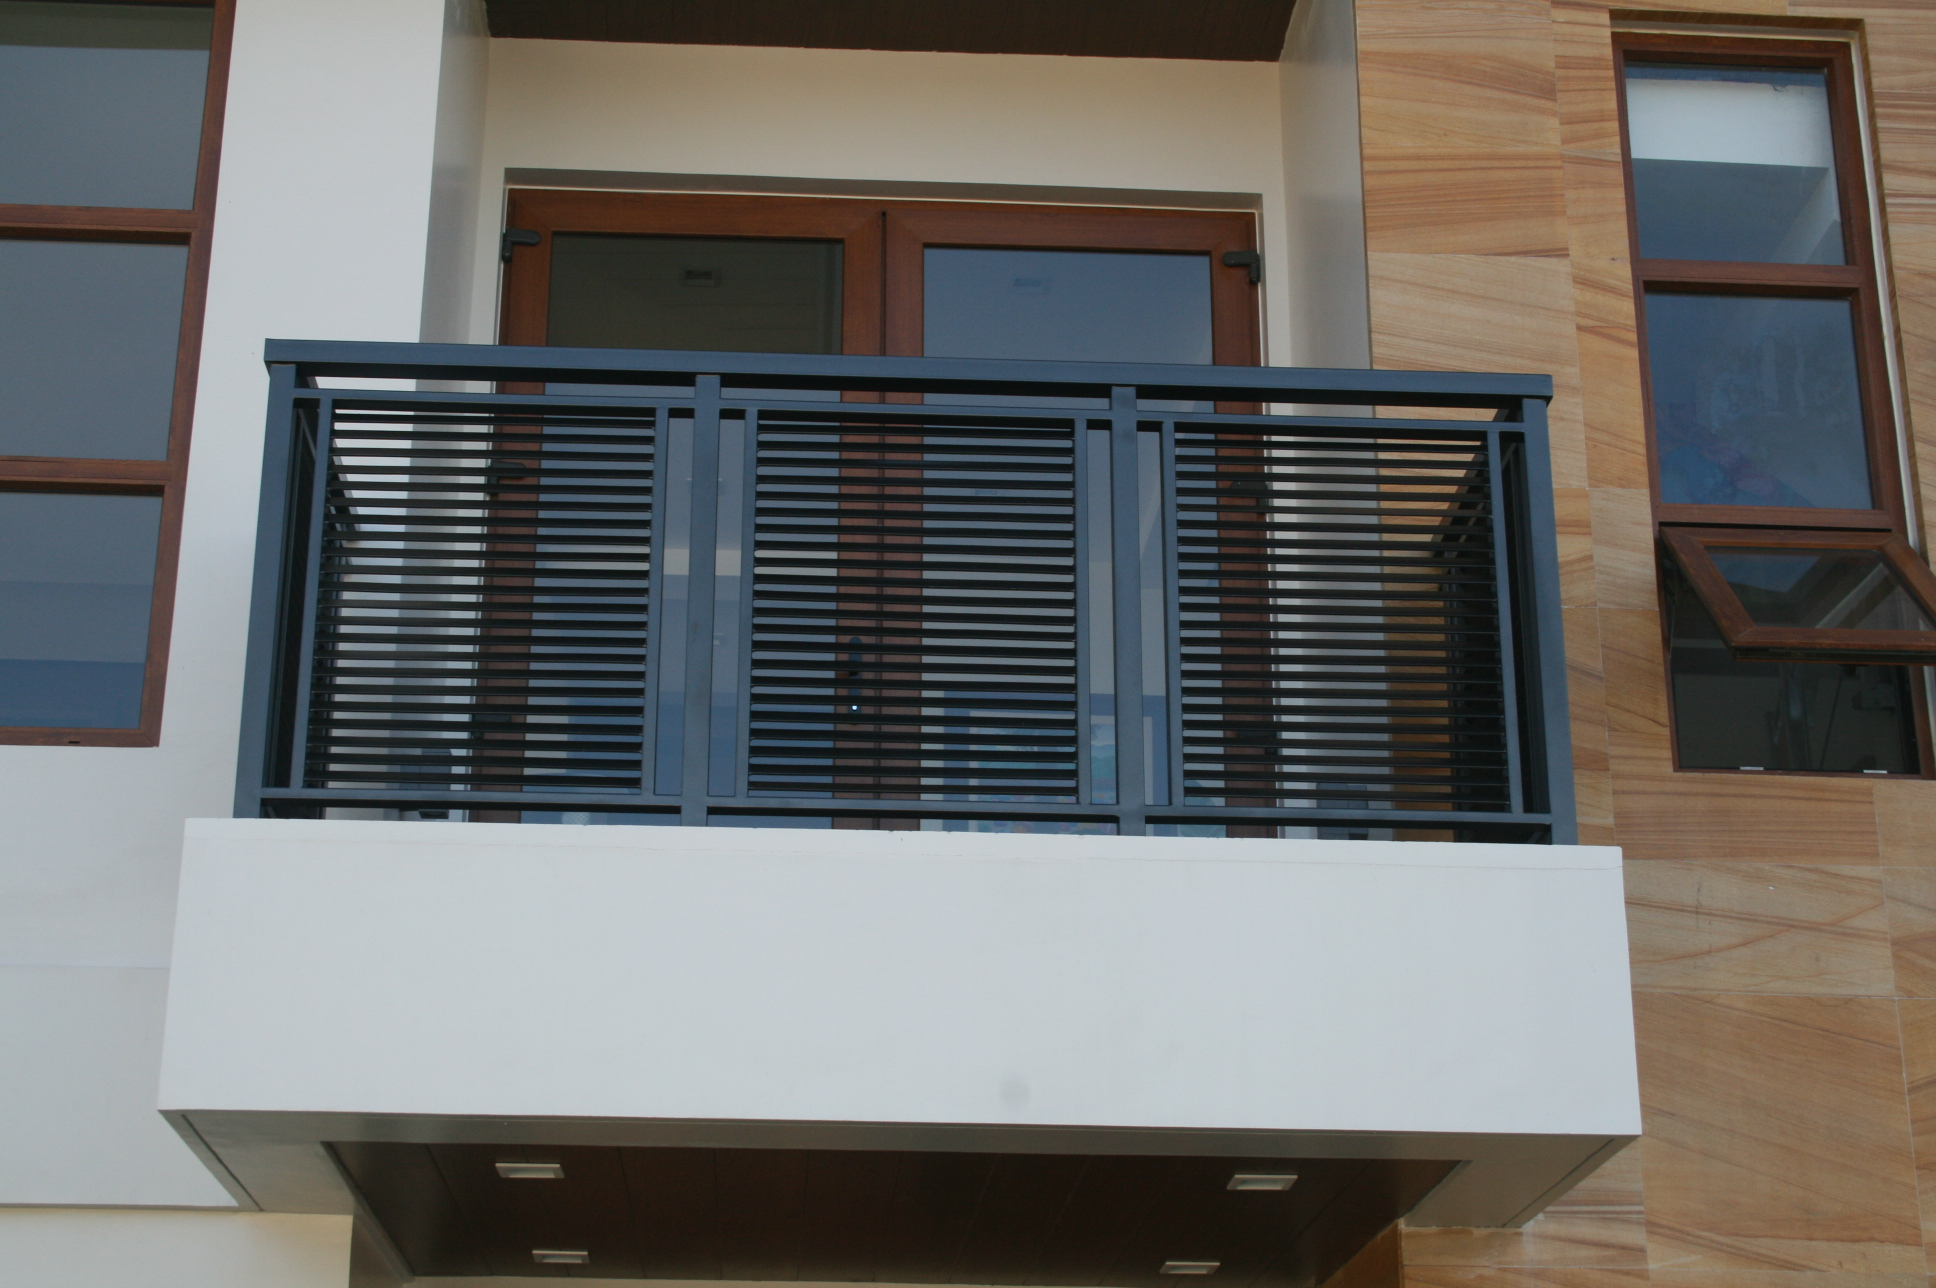 Latest design of window grills in the philippines - Modern Balcony Railing Philippines